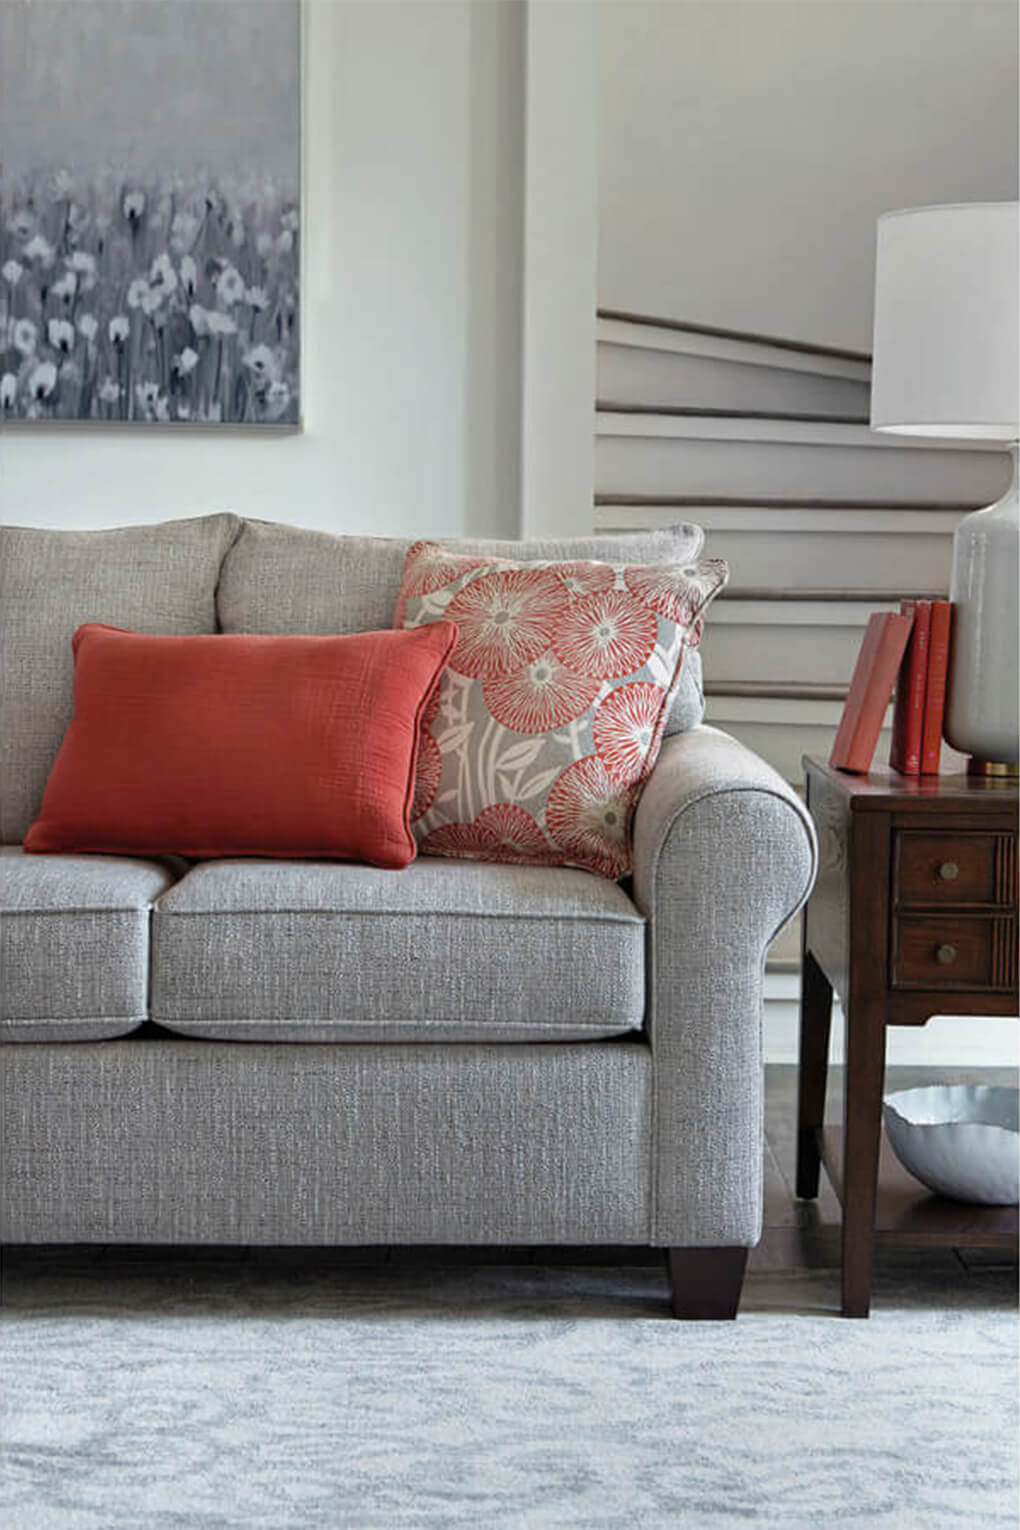 Design Tips How To Select The Best Fabric For You Sofa By England Furniture At Lancaster Galleries